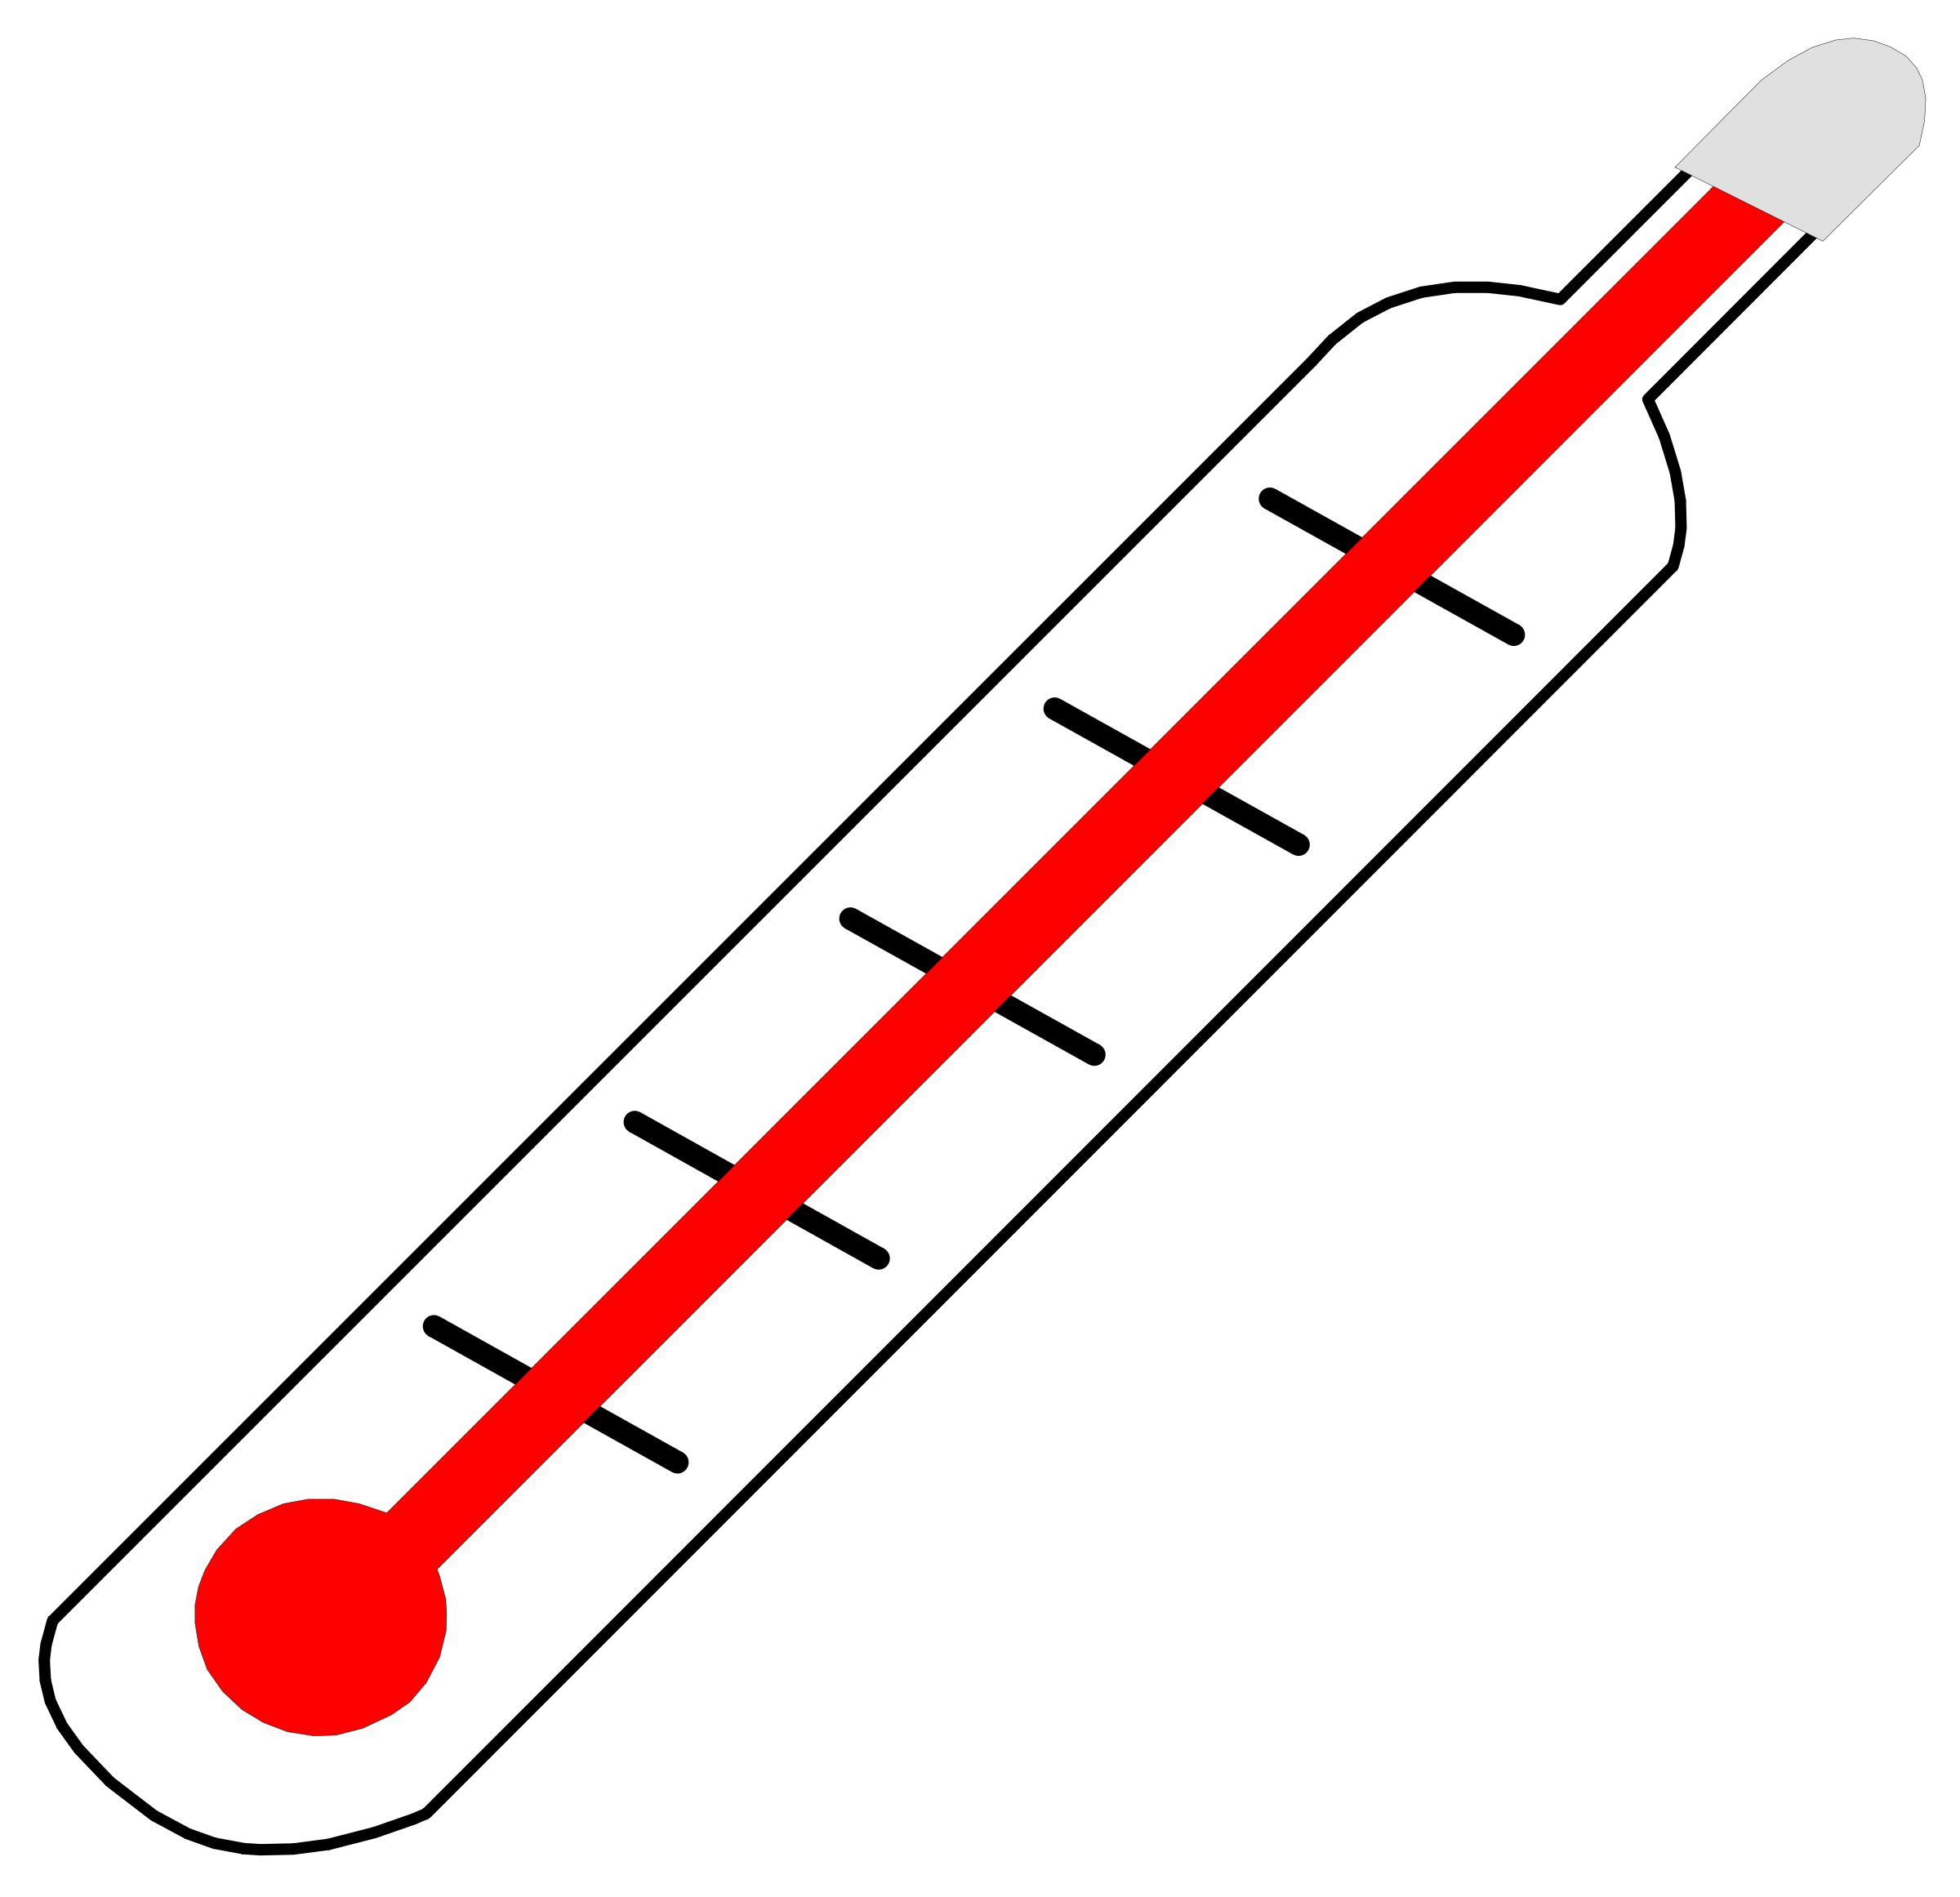 Thermometer thermostat clipart free clipart images